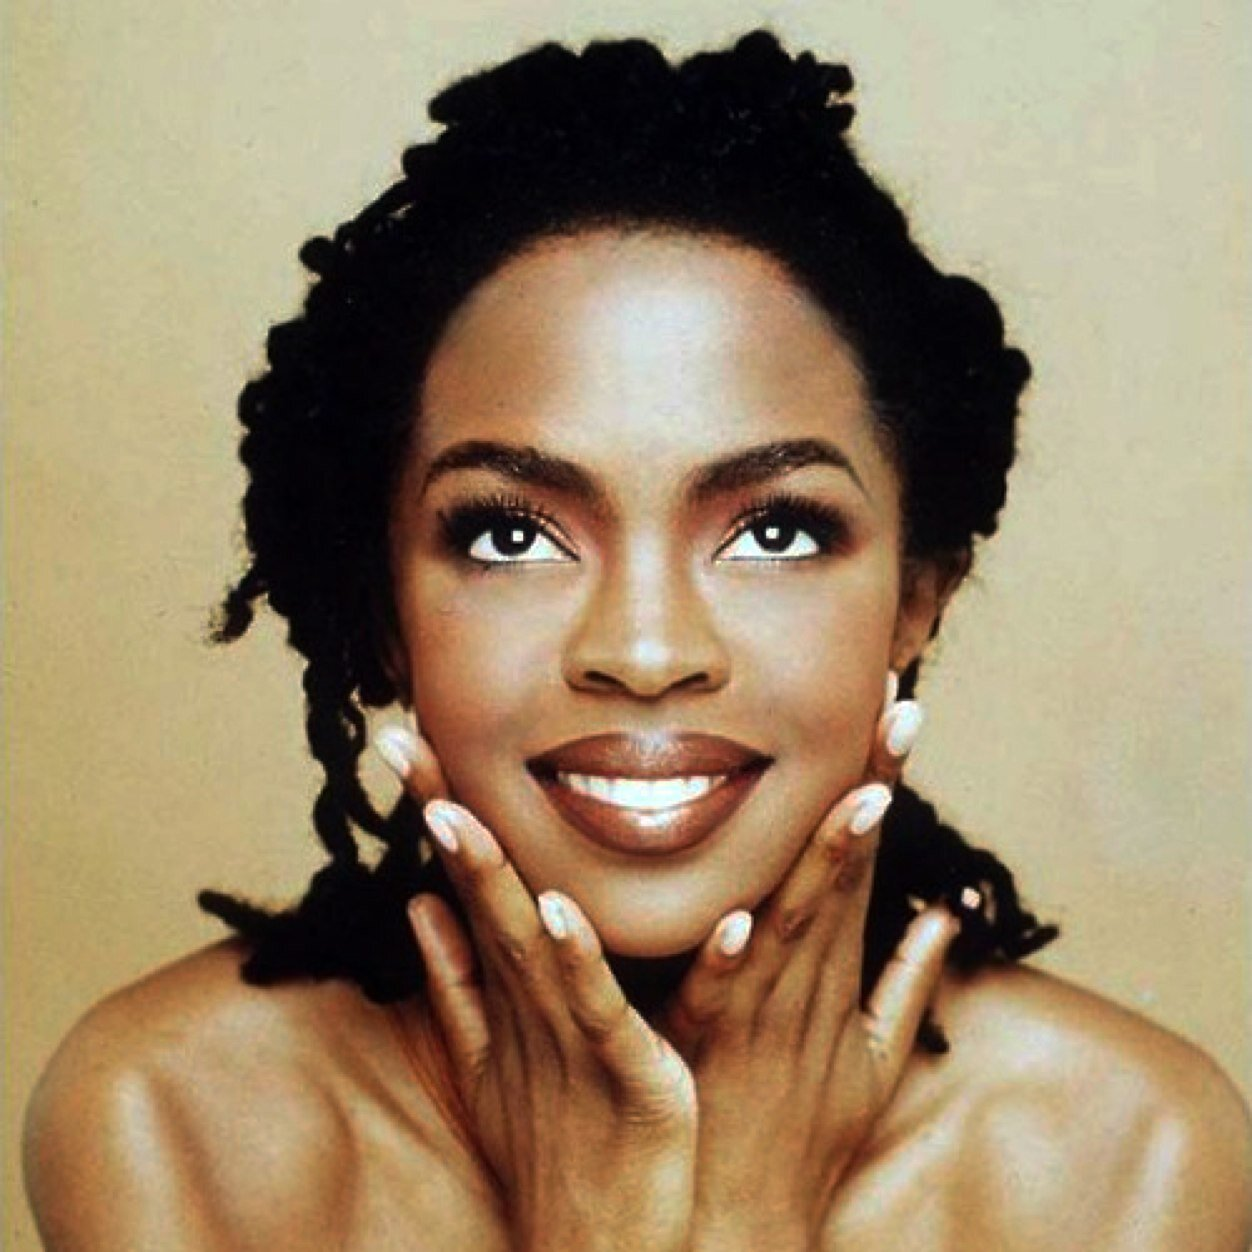 African American News, African American Music, Rhythm & Blues, R&B, The Miseducation of Lauryn Hill, Lauryn Hill, The Fuguees, KOLUMN Magazine, KOLUMN, KINDR'D Magazine, KINDR'D